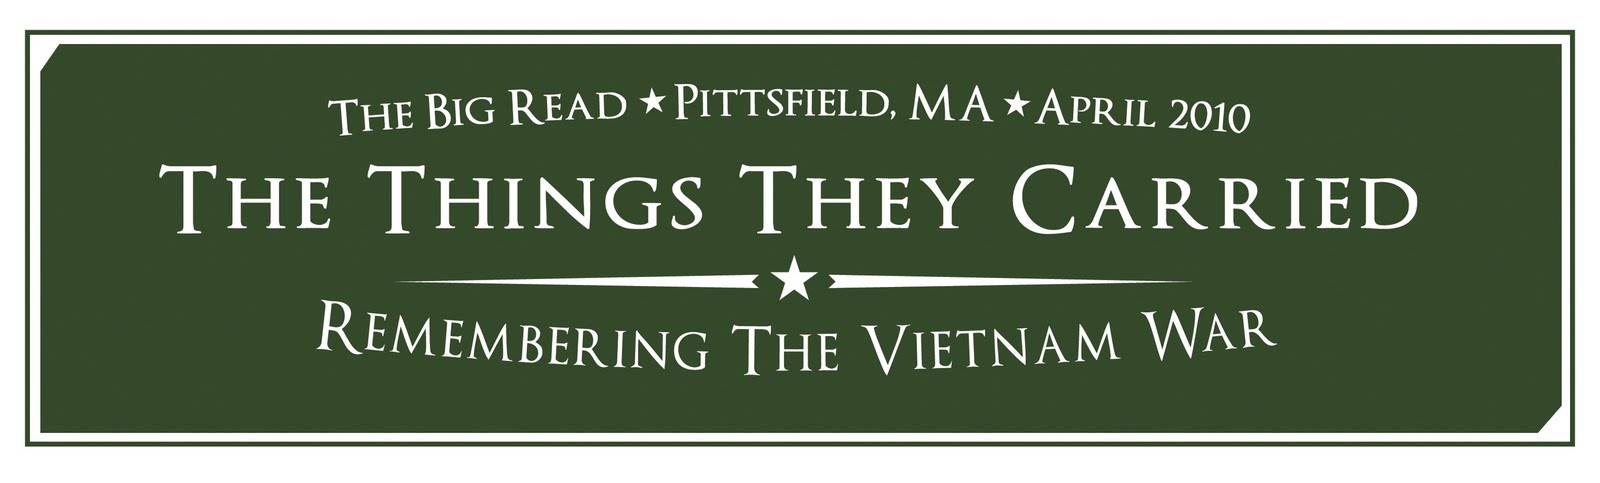 an analysis of tim obriens book the things they carried about the experiences during the vietnam war Tim obriens 1990 novel, the things they  through the book by tim o'brien it covers text analysis,  book about the vietnam war, the things they carried,.